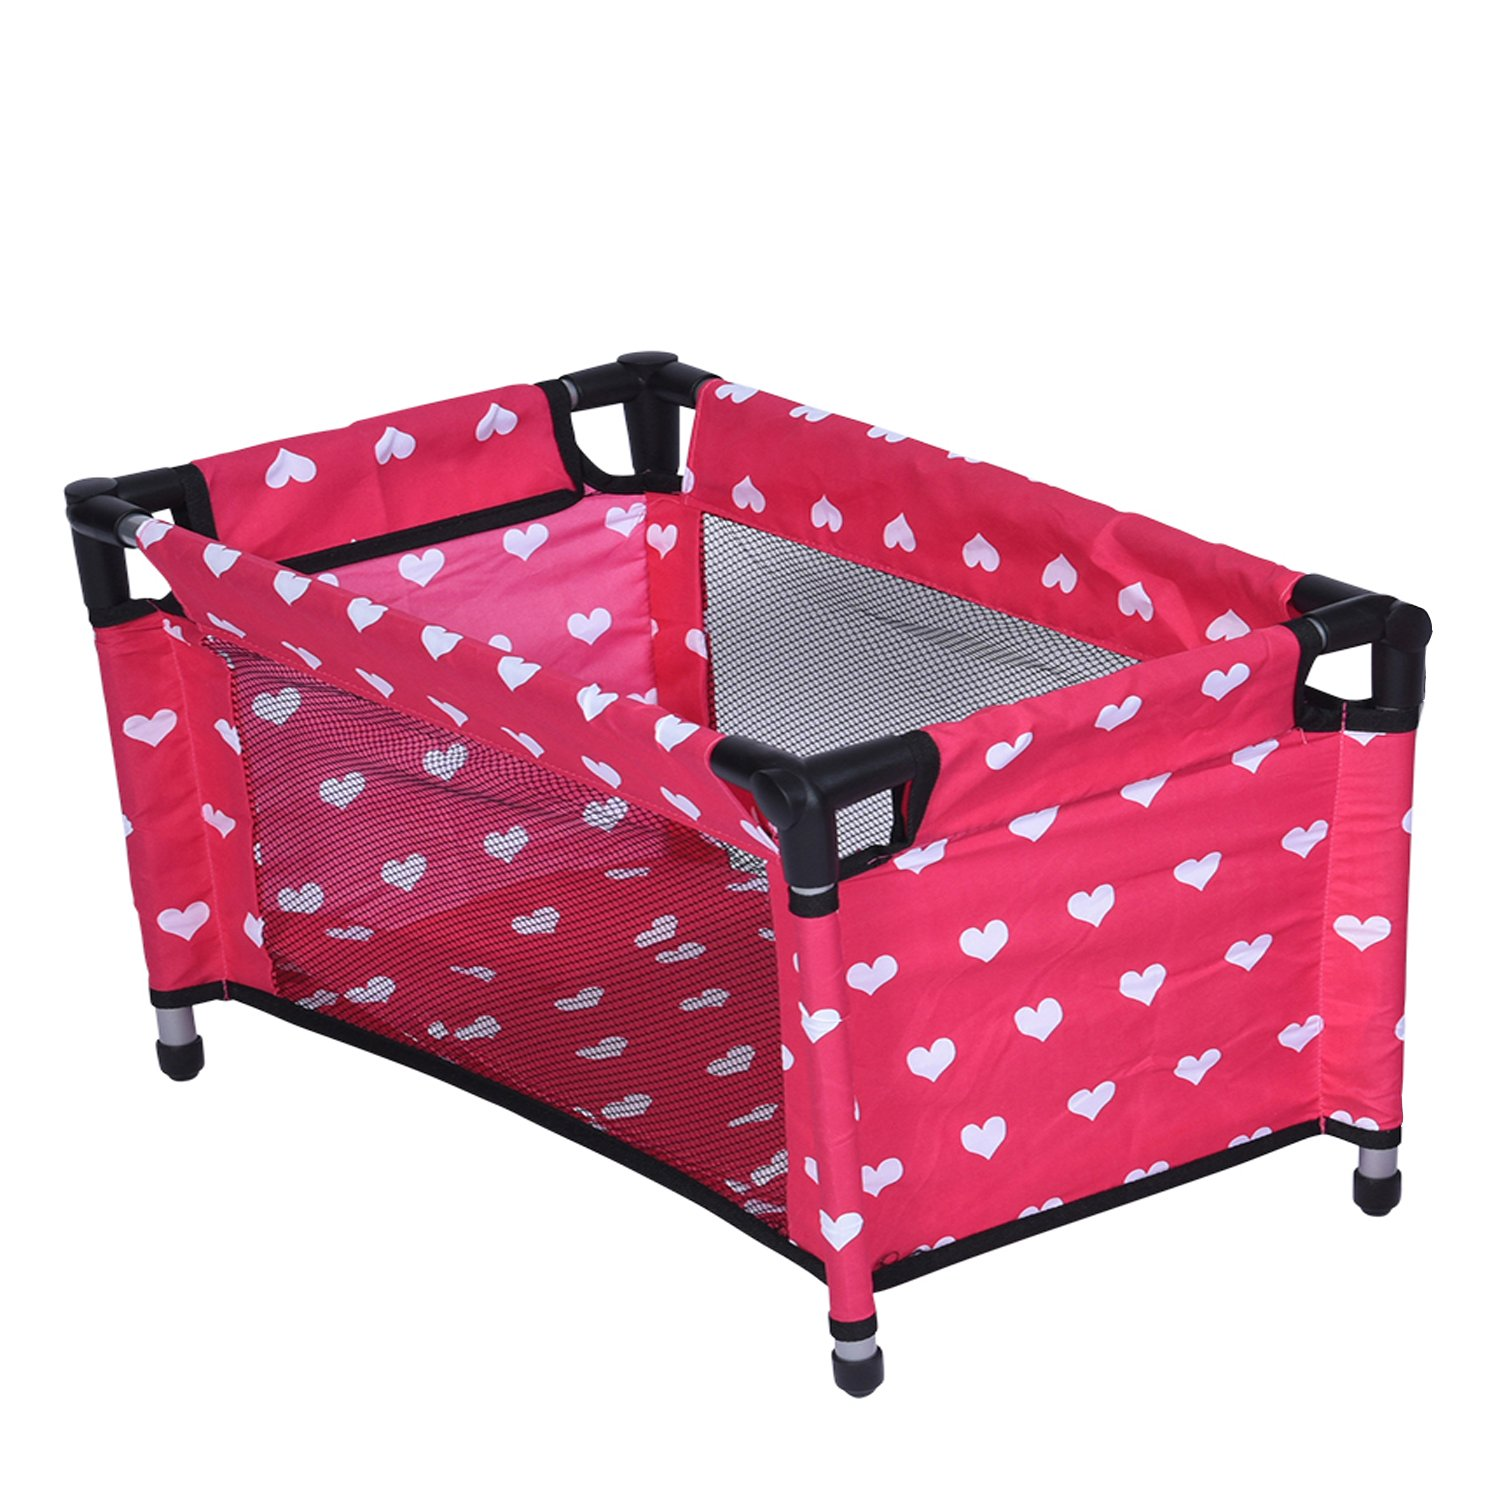 Doll Fold n' Store Pack N' Play - Doll Play Yard with Cute Hearts Design by The New York Doll Collection